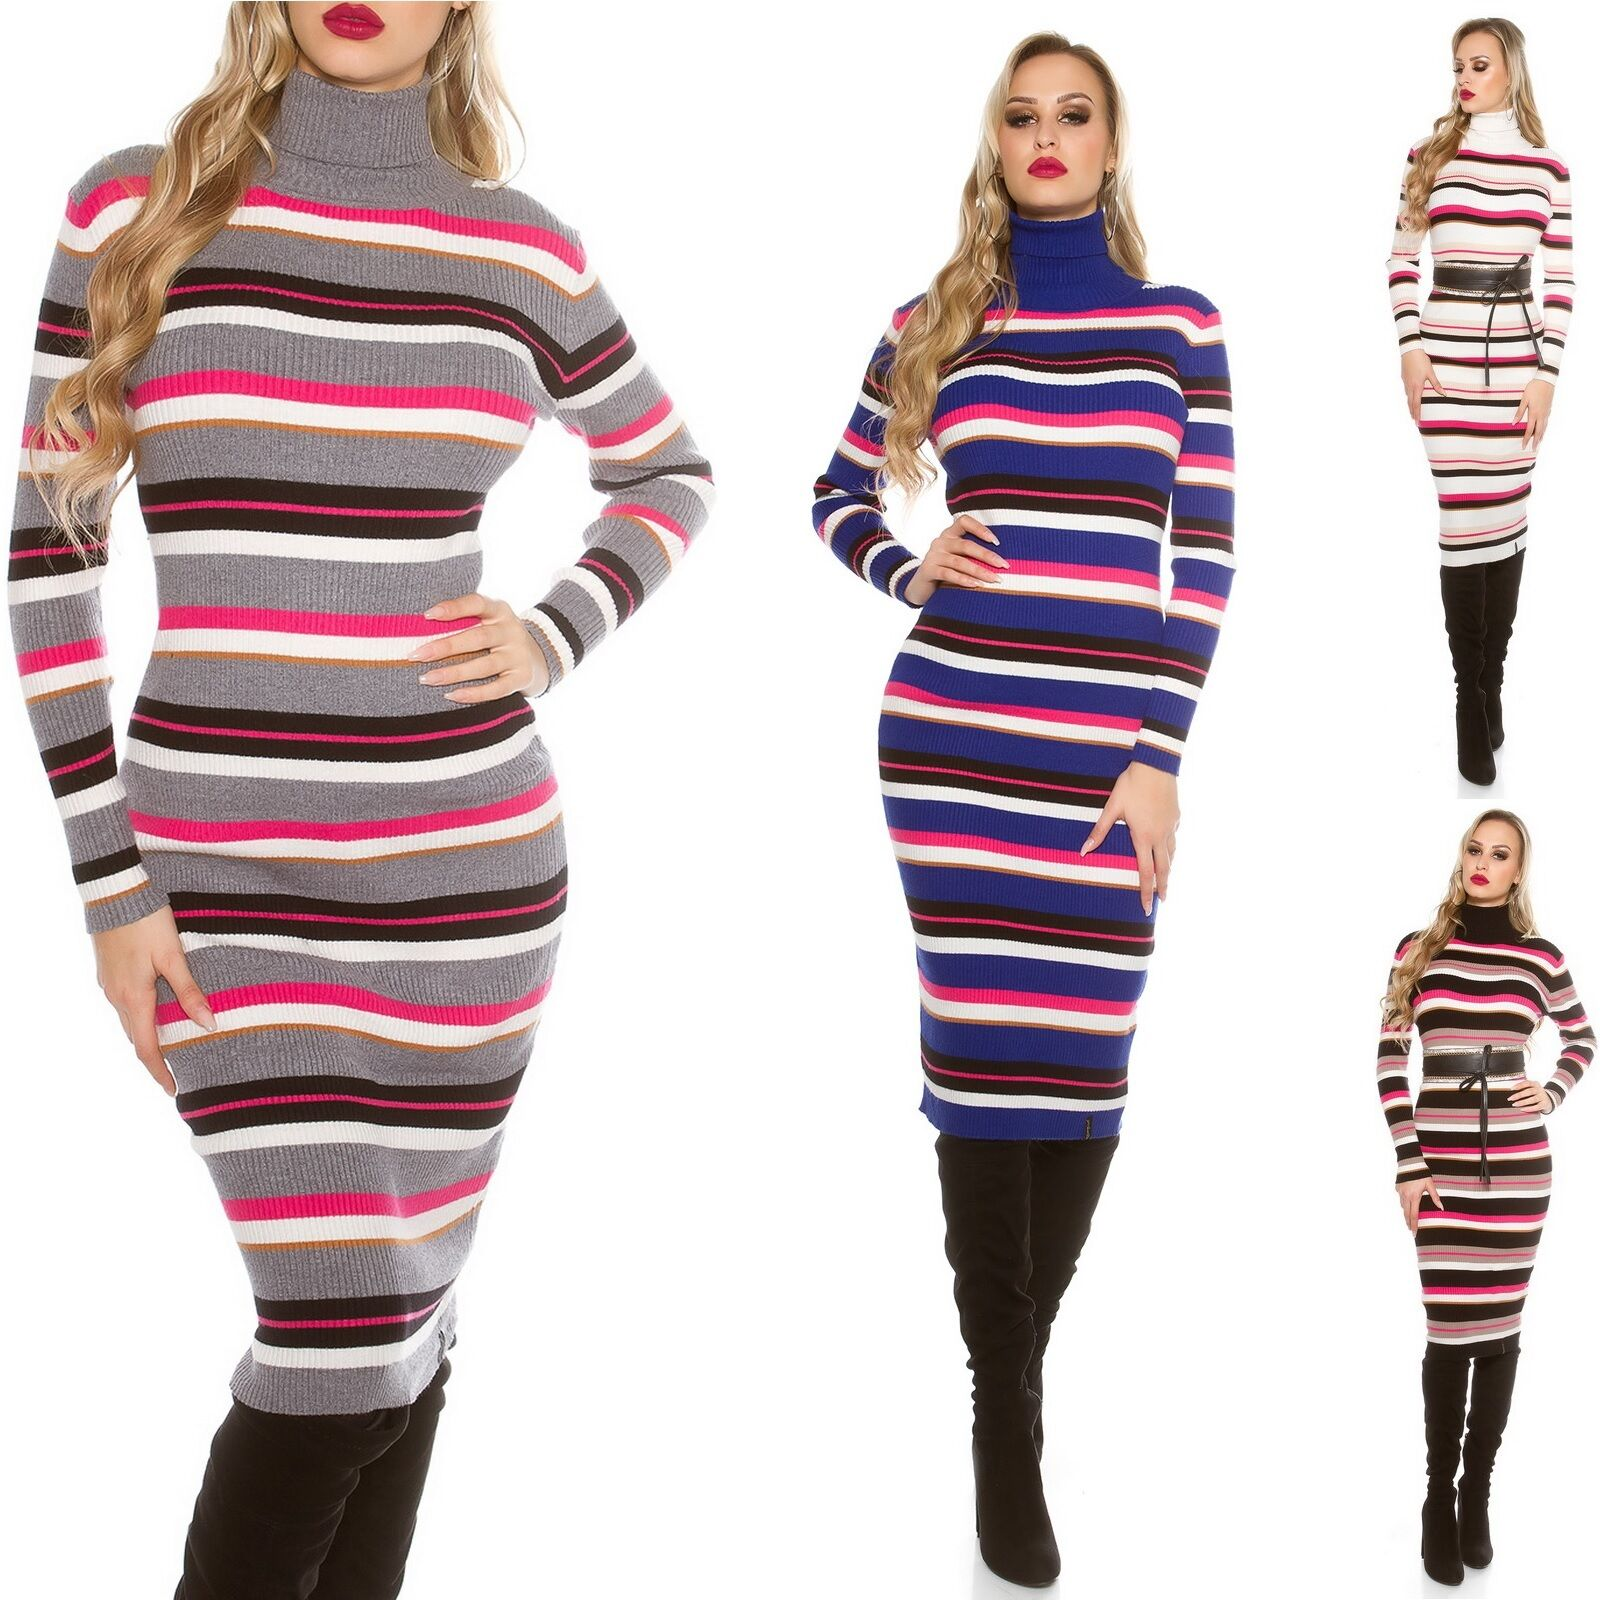 545e1fb1083 Details about Women s Striped Turtleneck Midi Sweater Dress - One Size  (s M L)